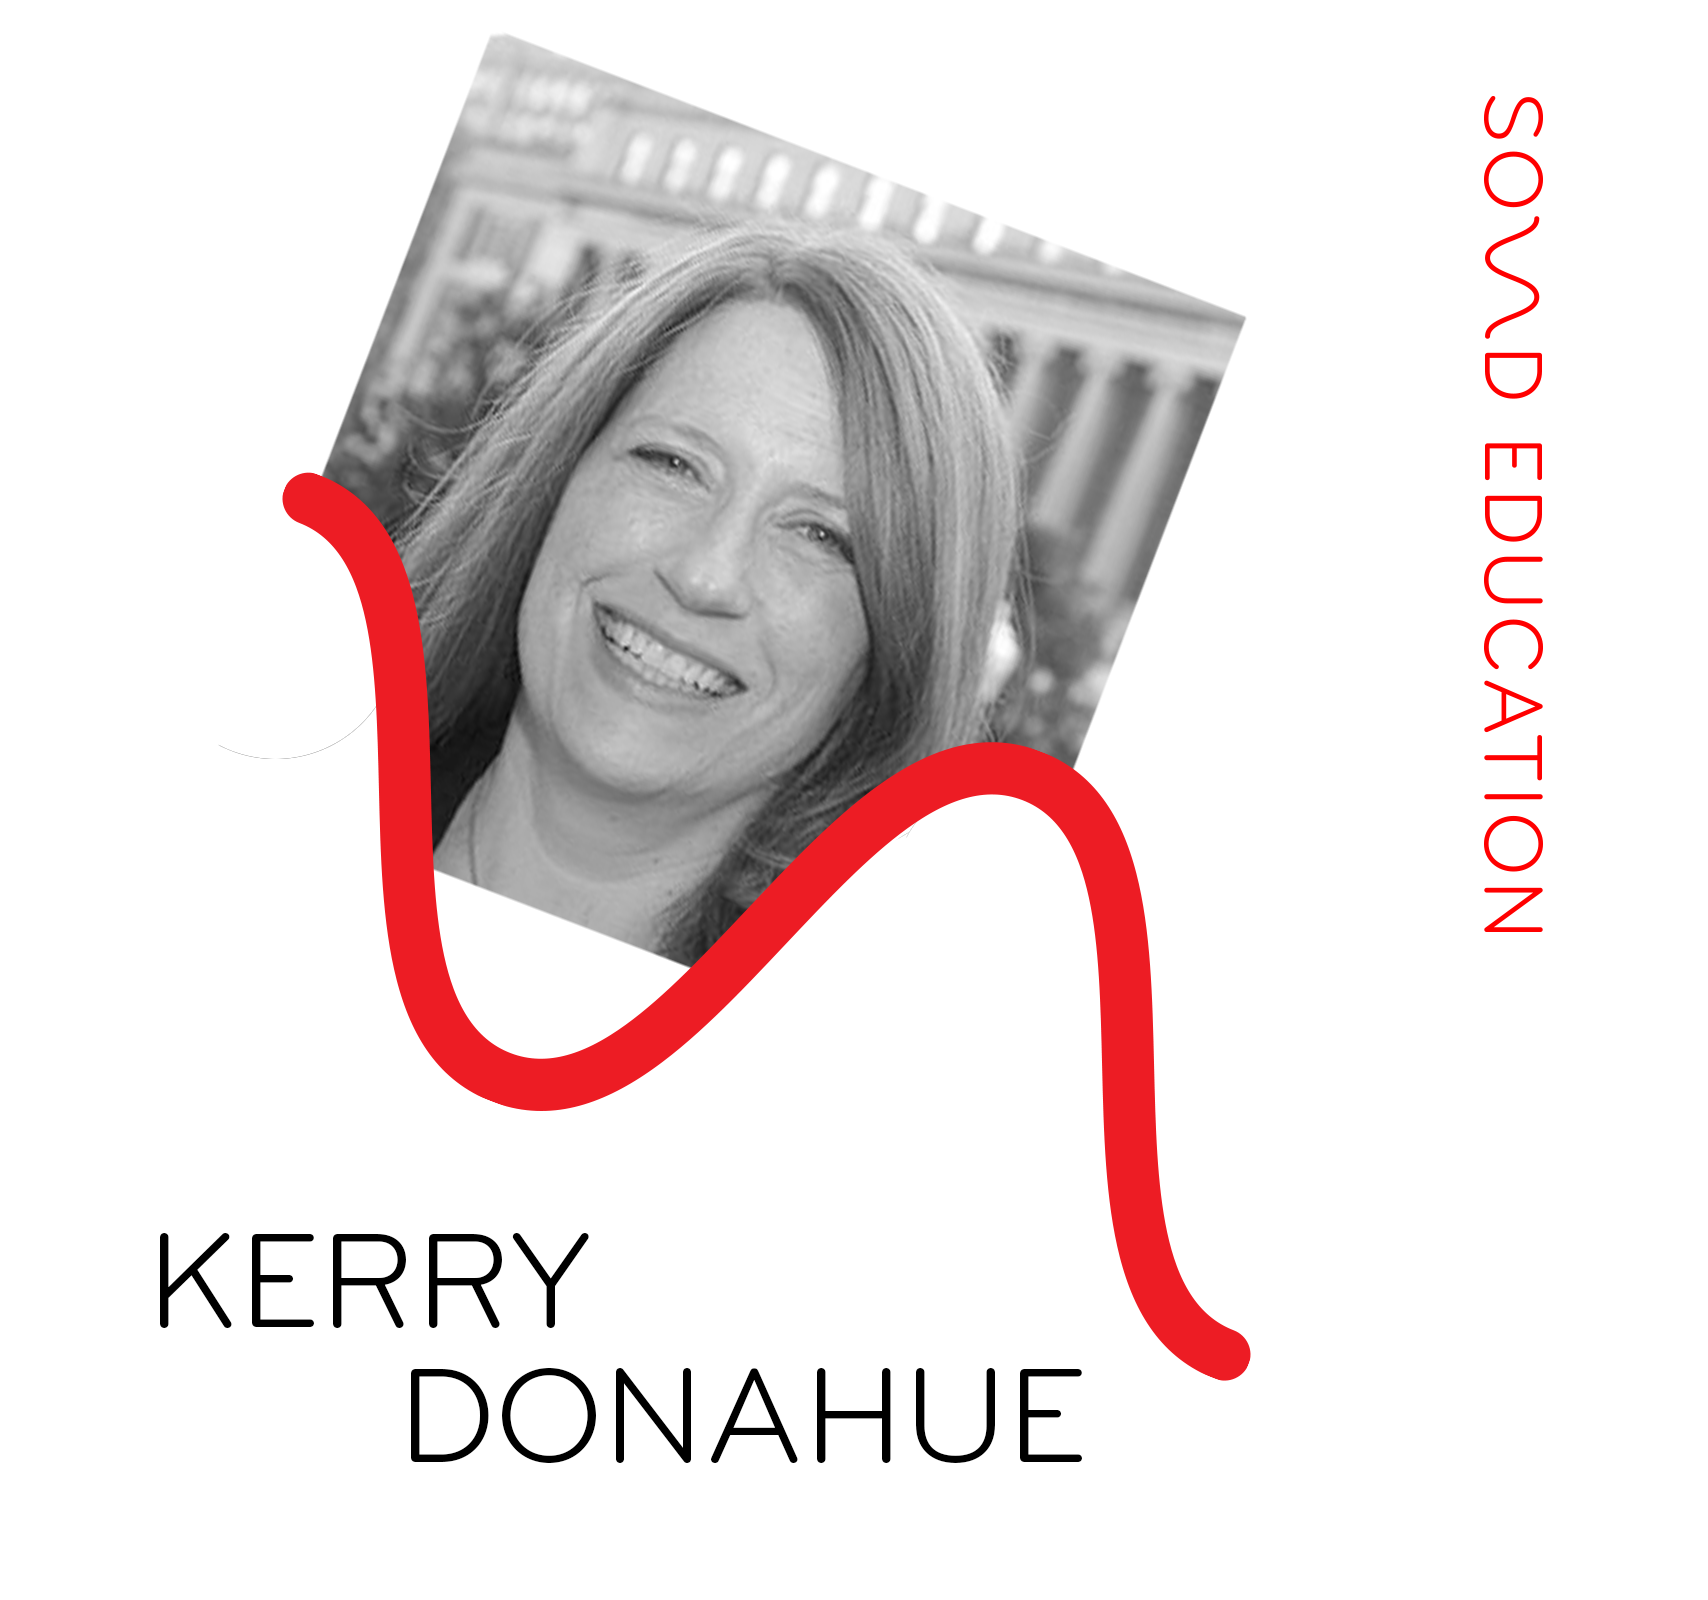 donahue_kerry.png